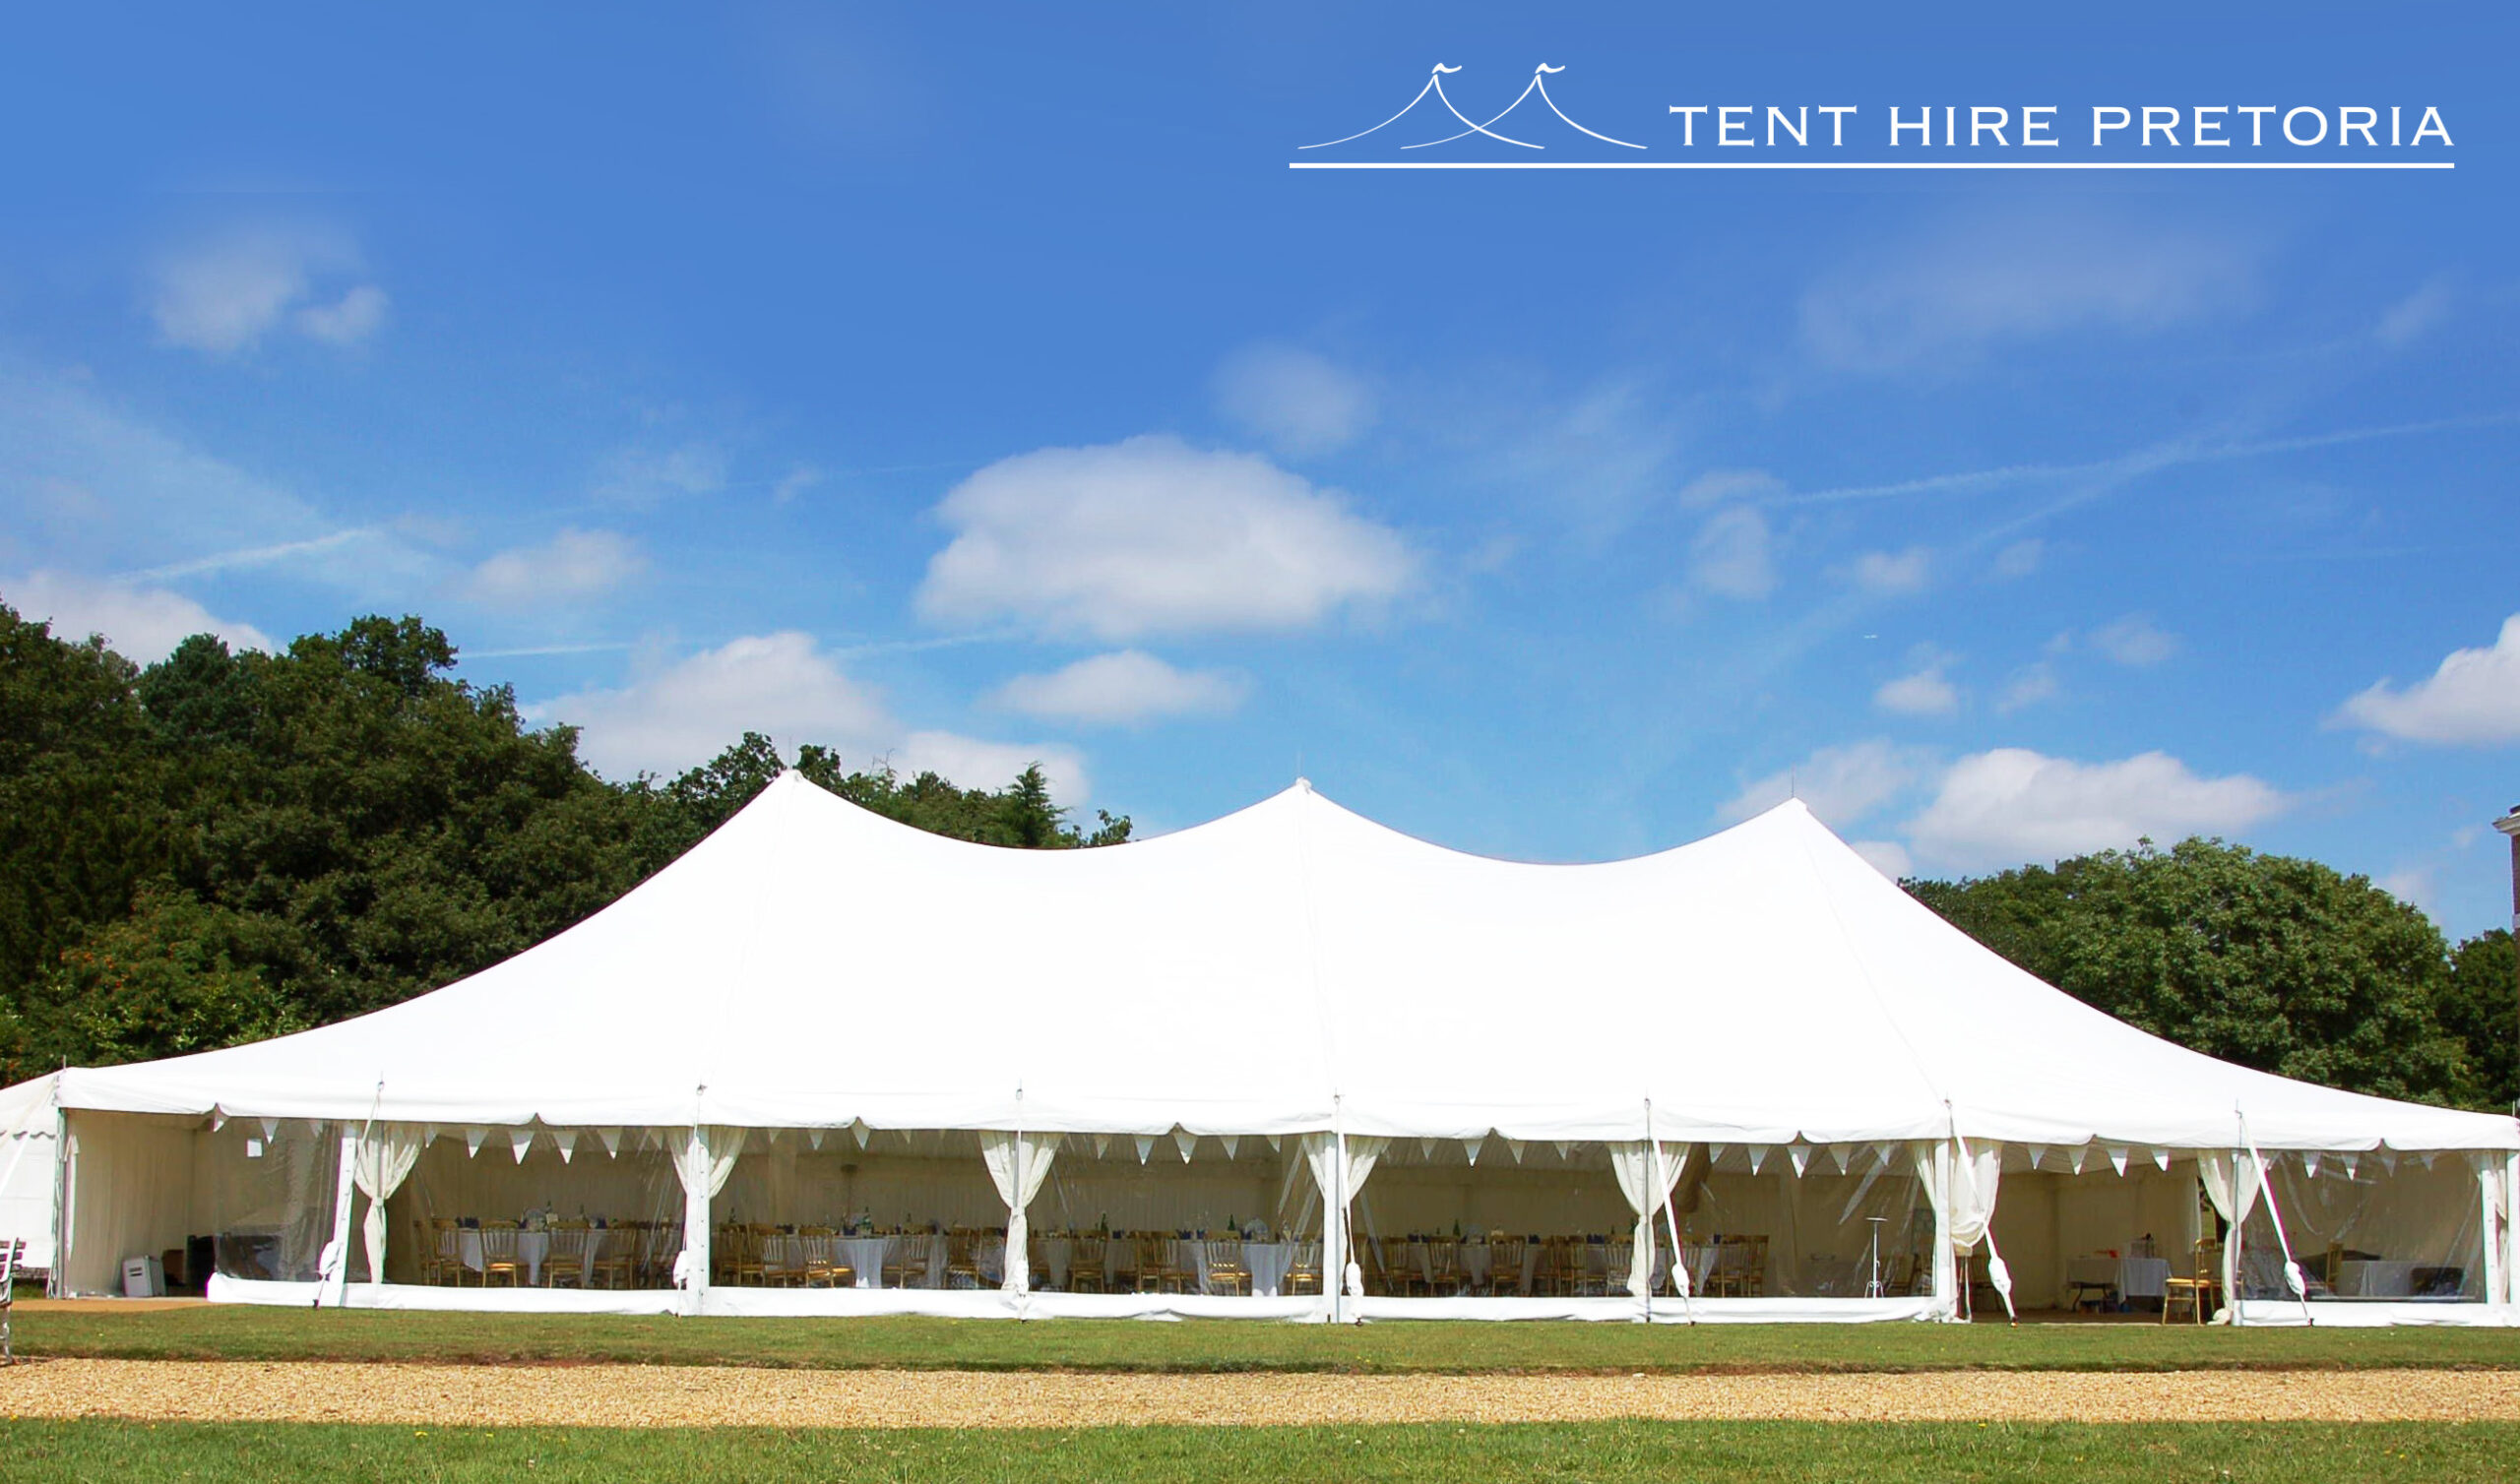 pretoria tent hire company & The Very Best Marquee Hire Pretoria Wide | Call: 012 004 1848